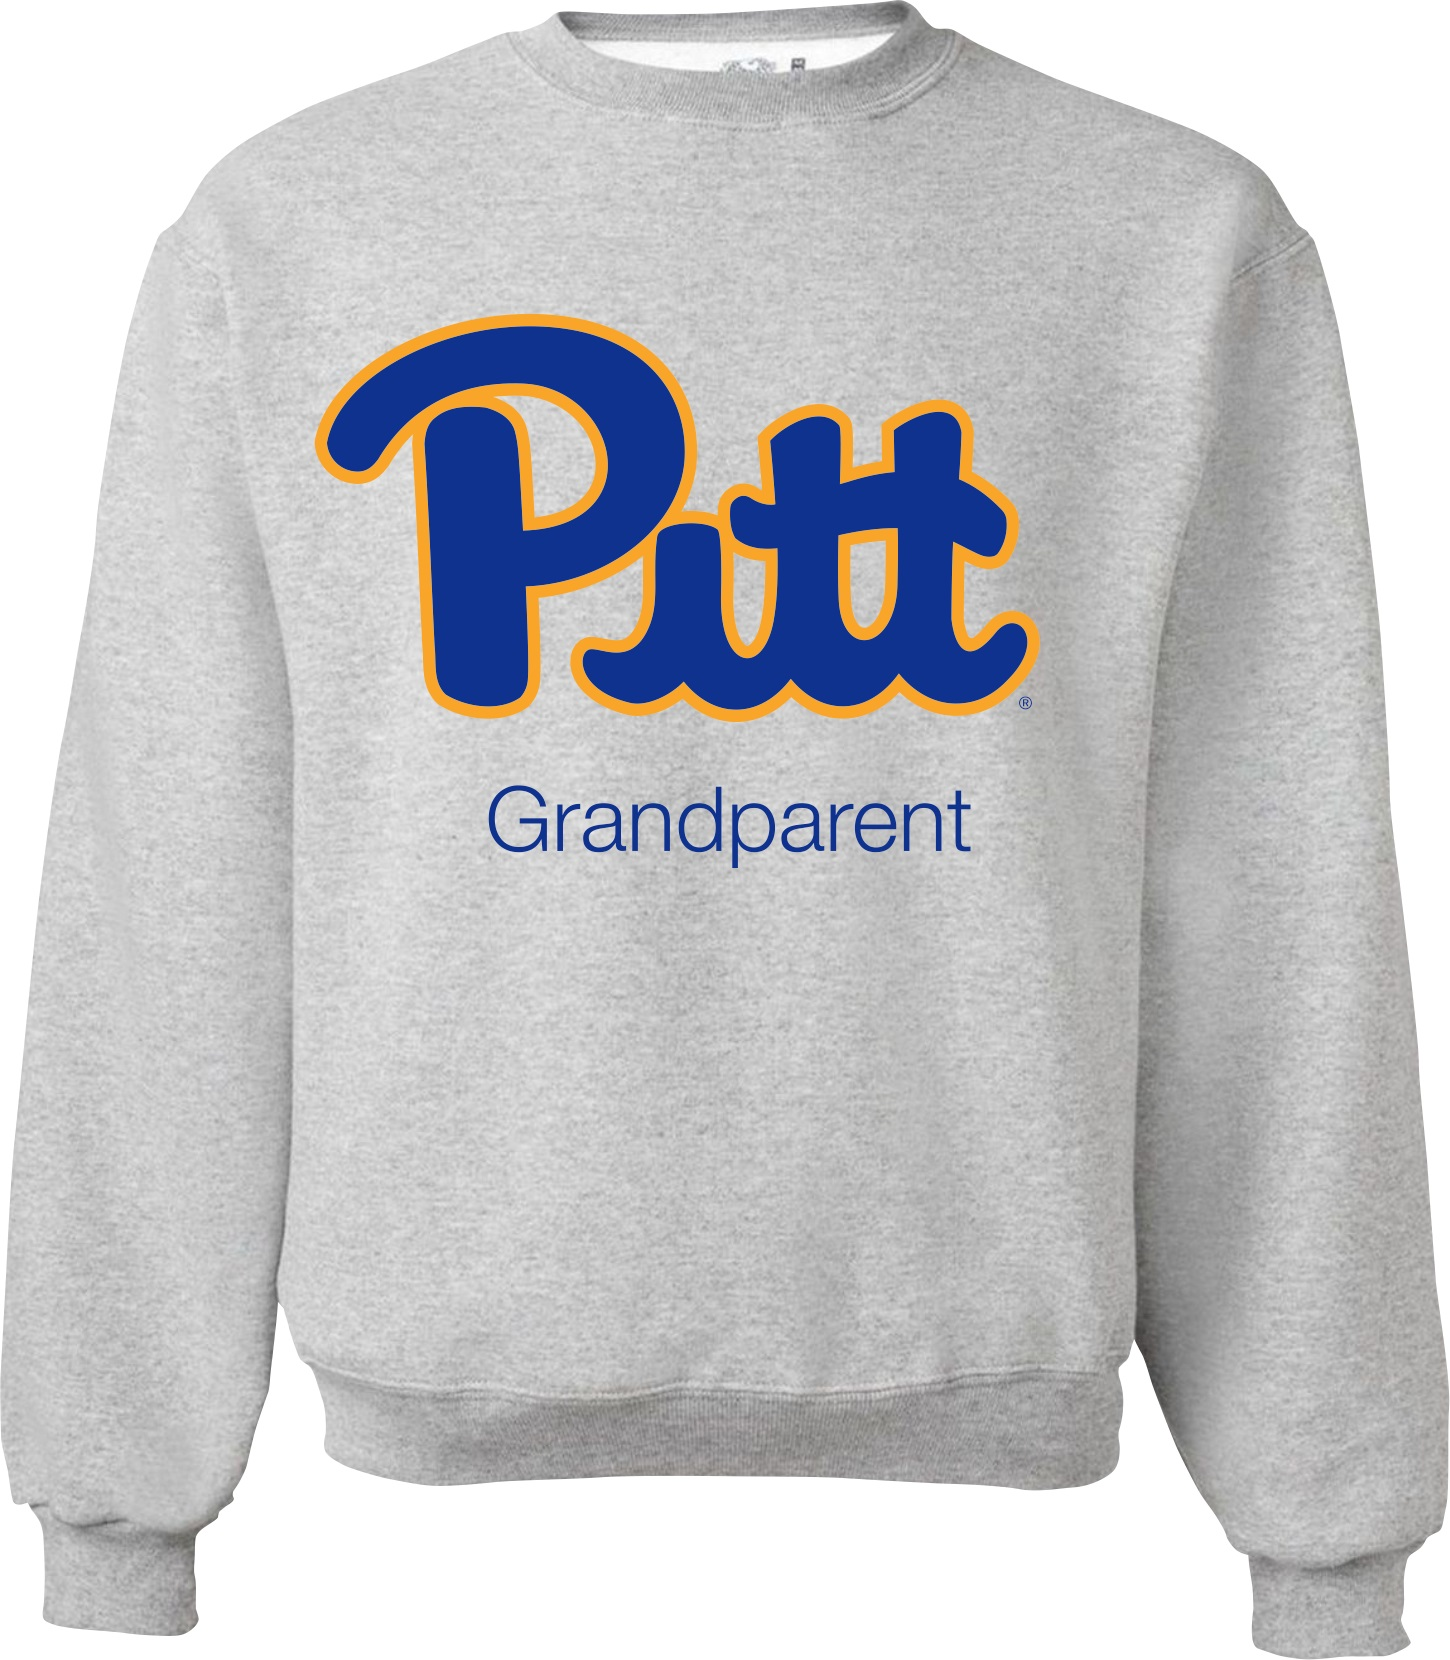 "Cover Image For Pitt Family ""Grandparent"" Crew - Grey"